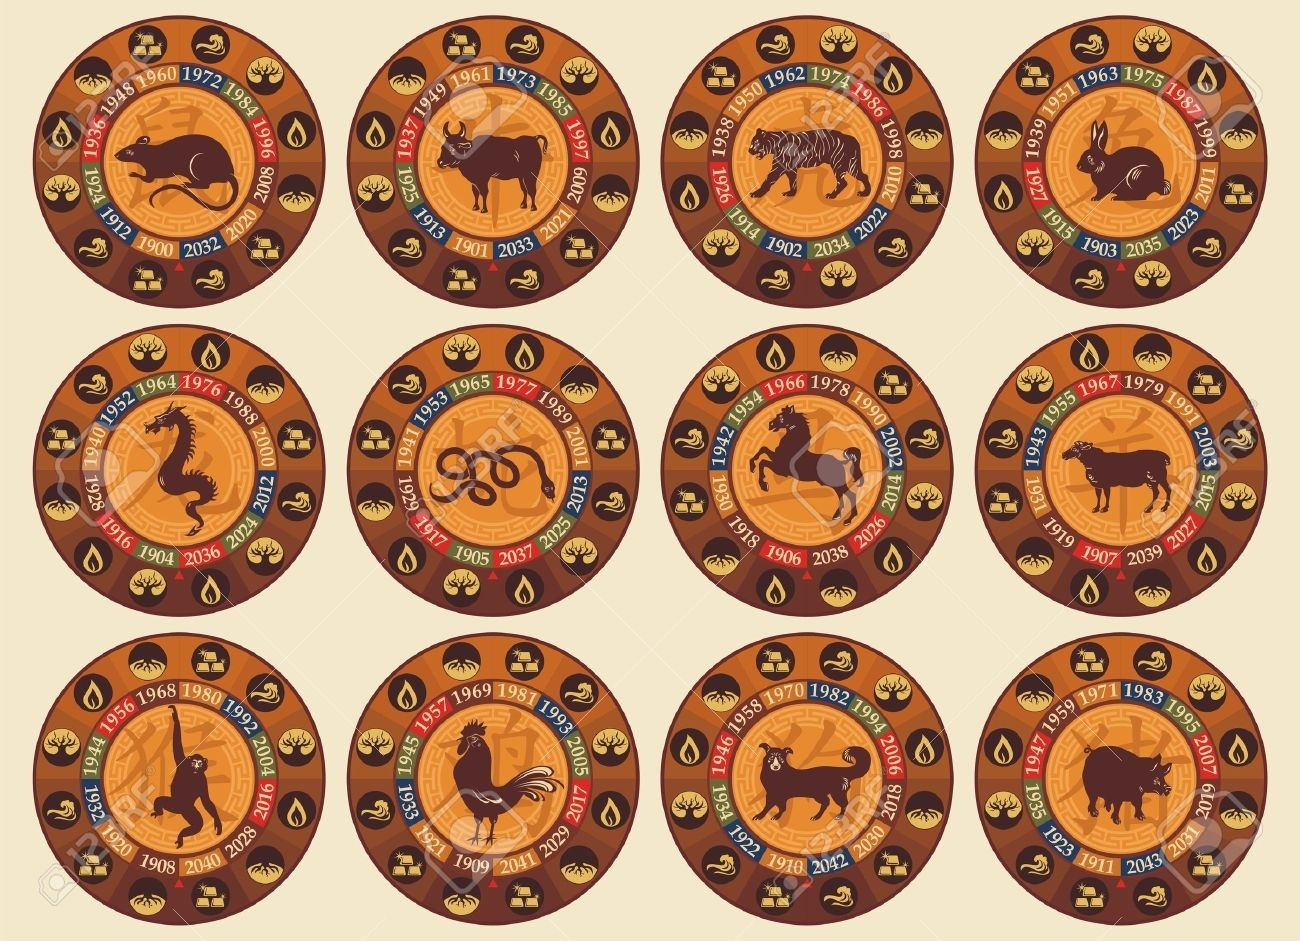 Chinese Zodiac Set With Years And The Five Elements Symbols Royalty Chinese Zodiac Calendar And Elements